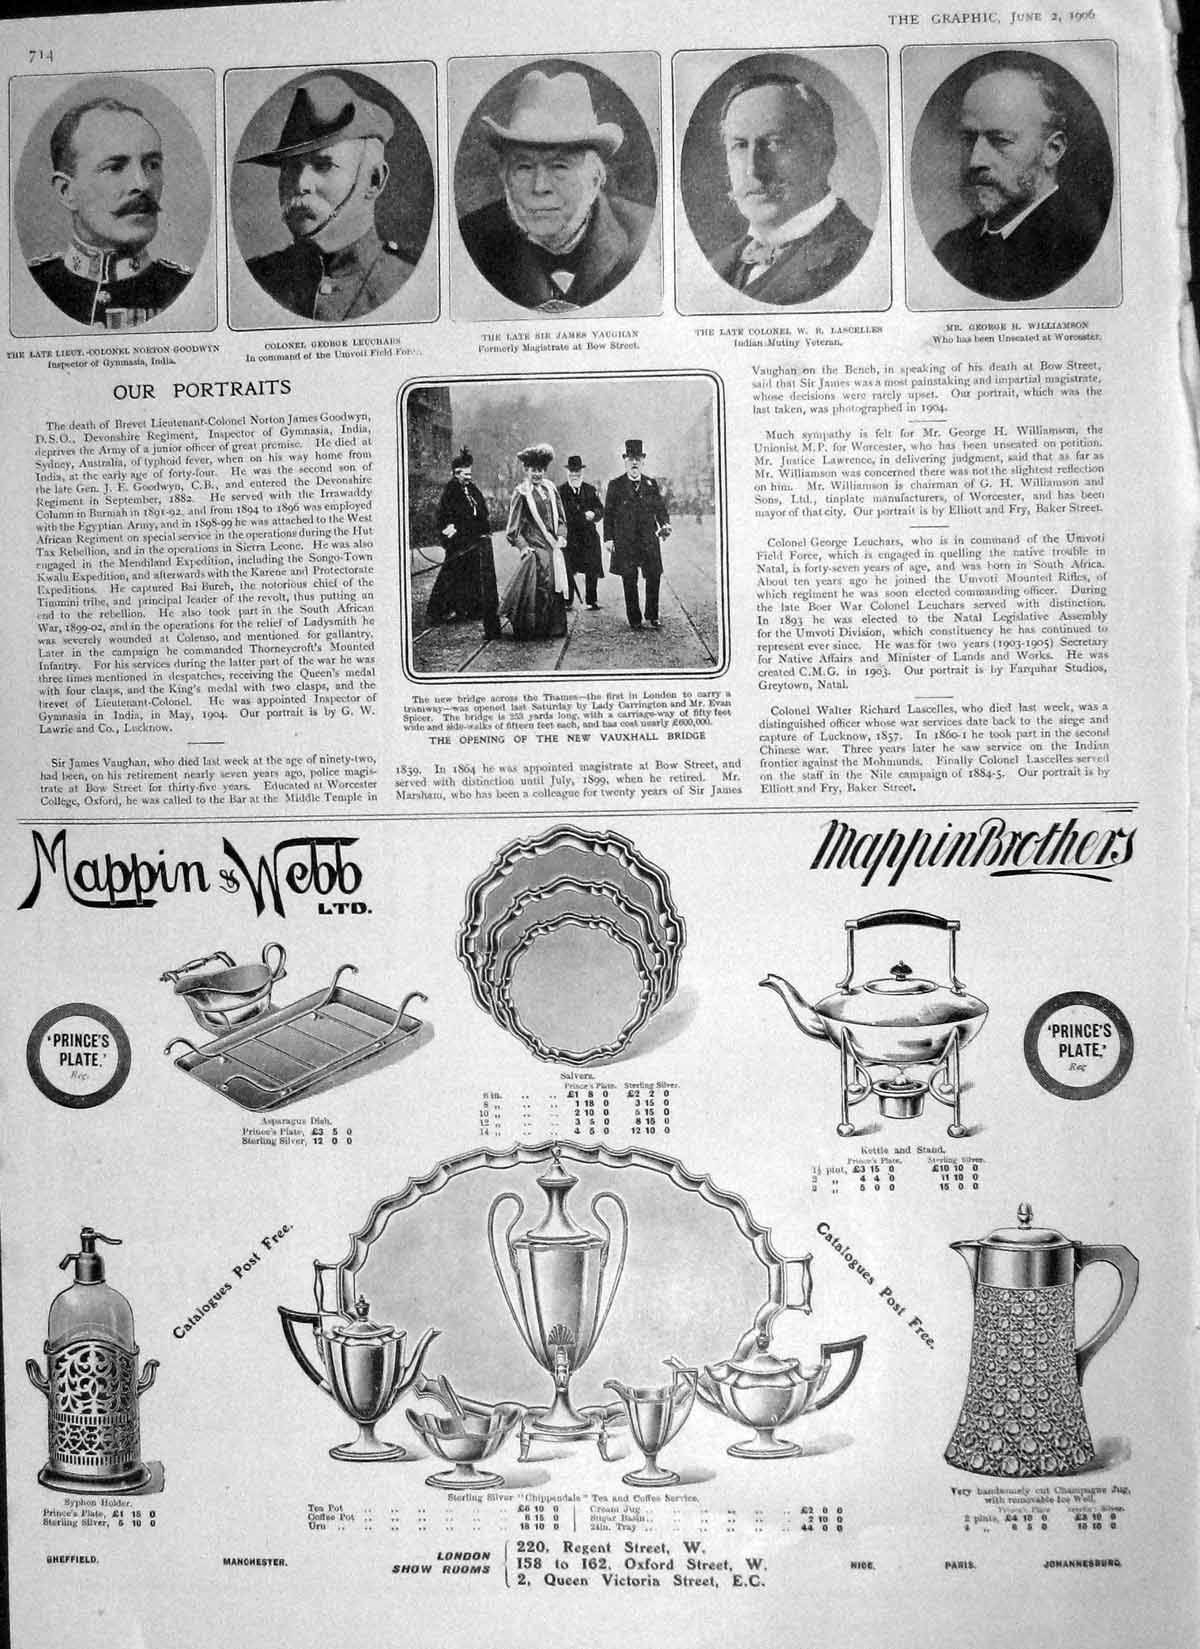 Old-Antique-Print-1906-Bluejackets-Chatham-Palace-Madrid-Goodwyn-Vaughan-20th thumbnail 2